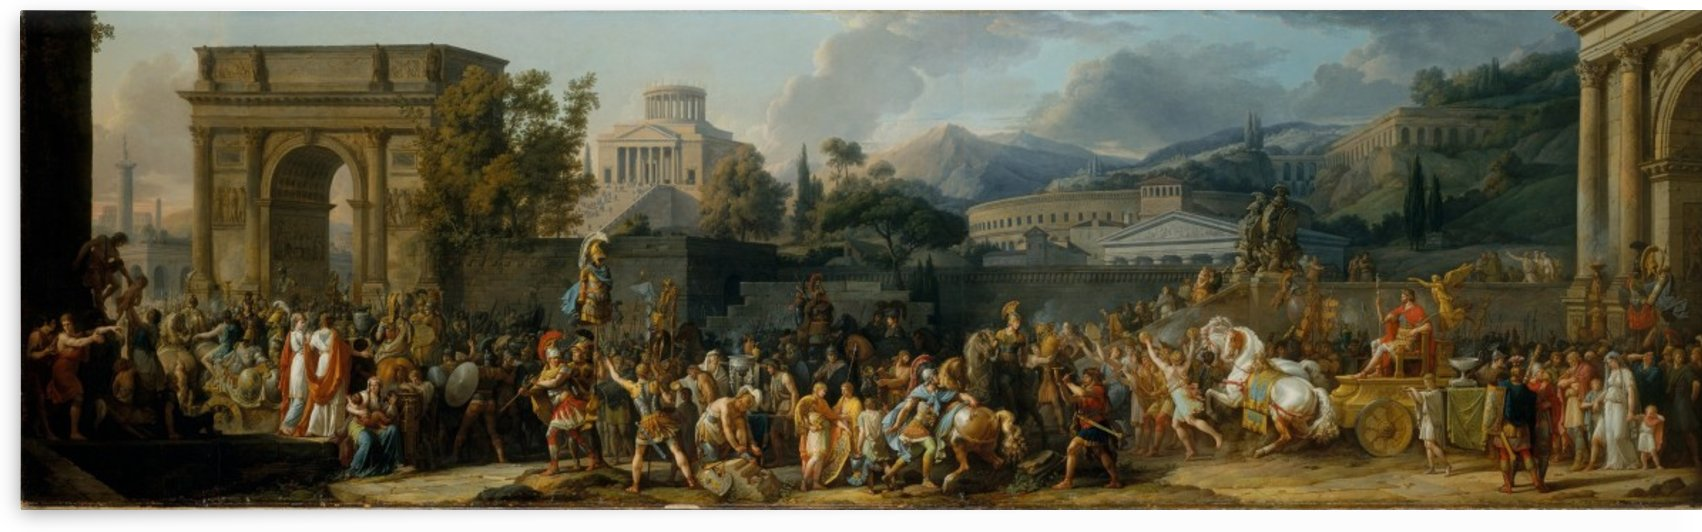 The Triumph of Aemilius Paulus by Antoine Charles Horace Vernet